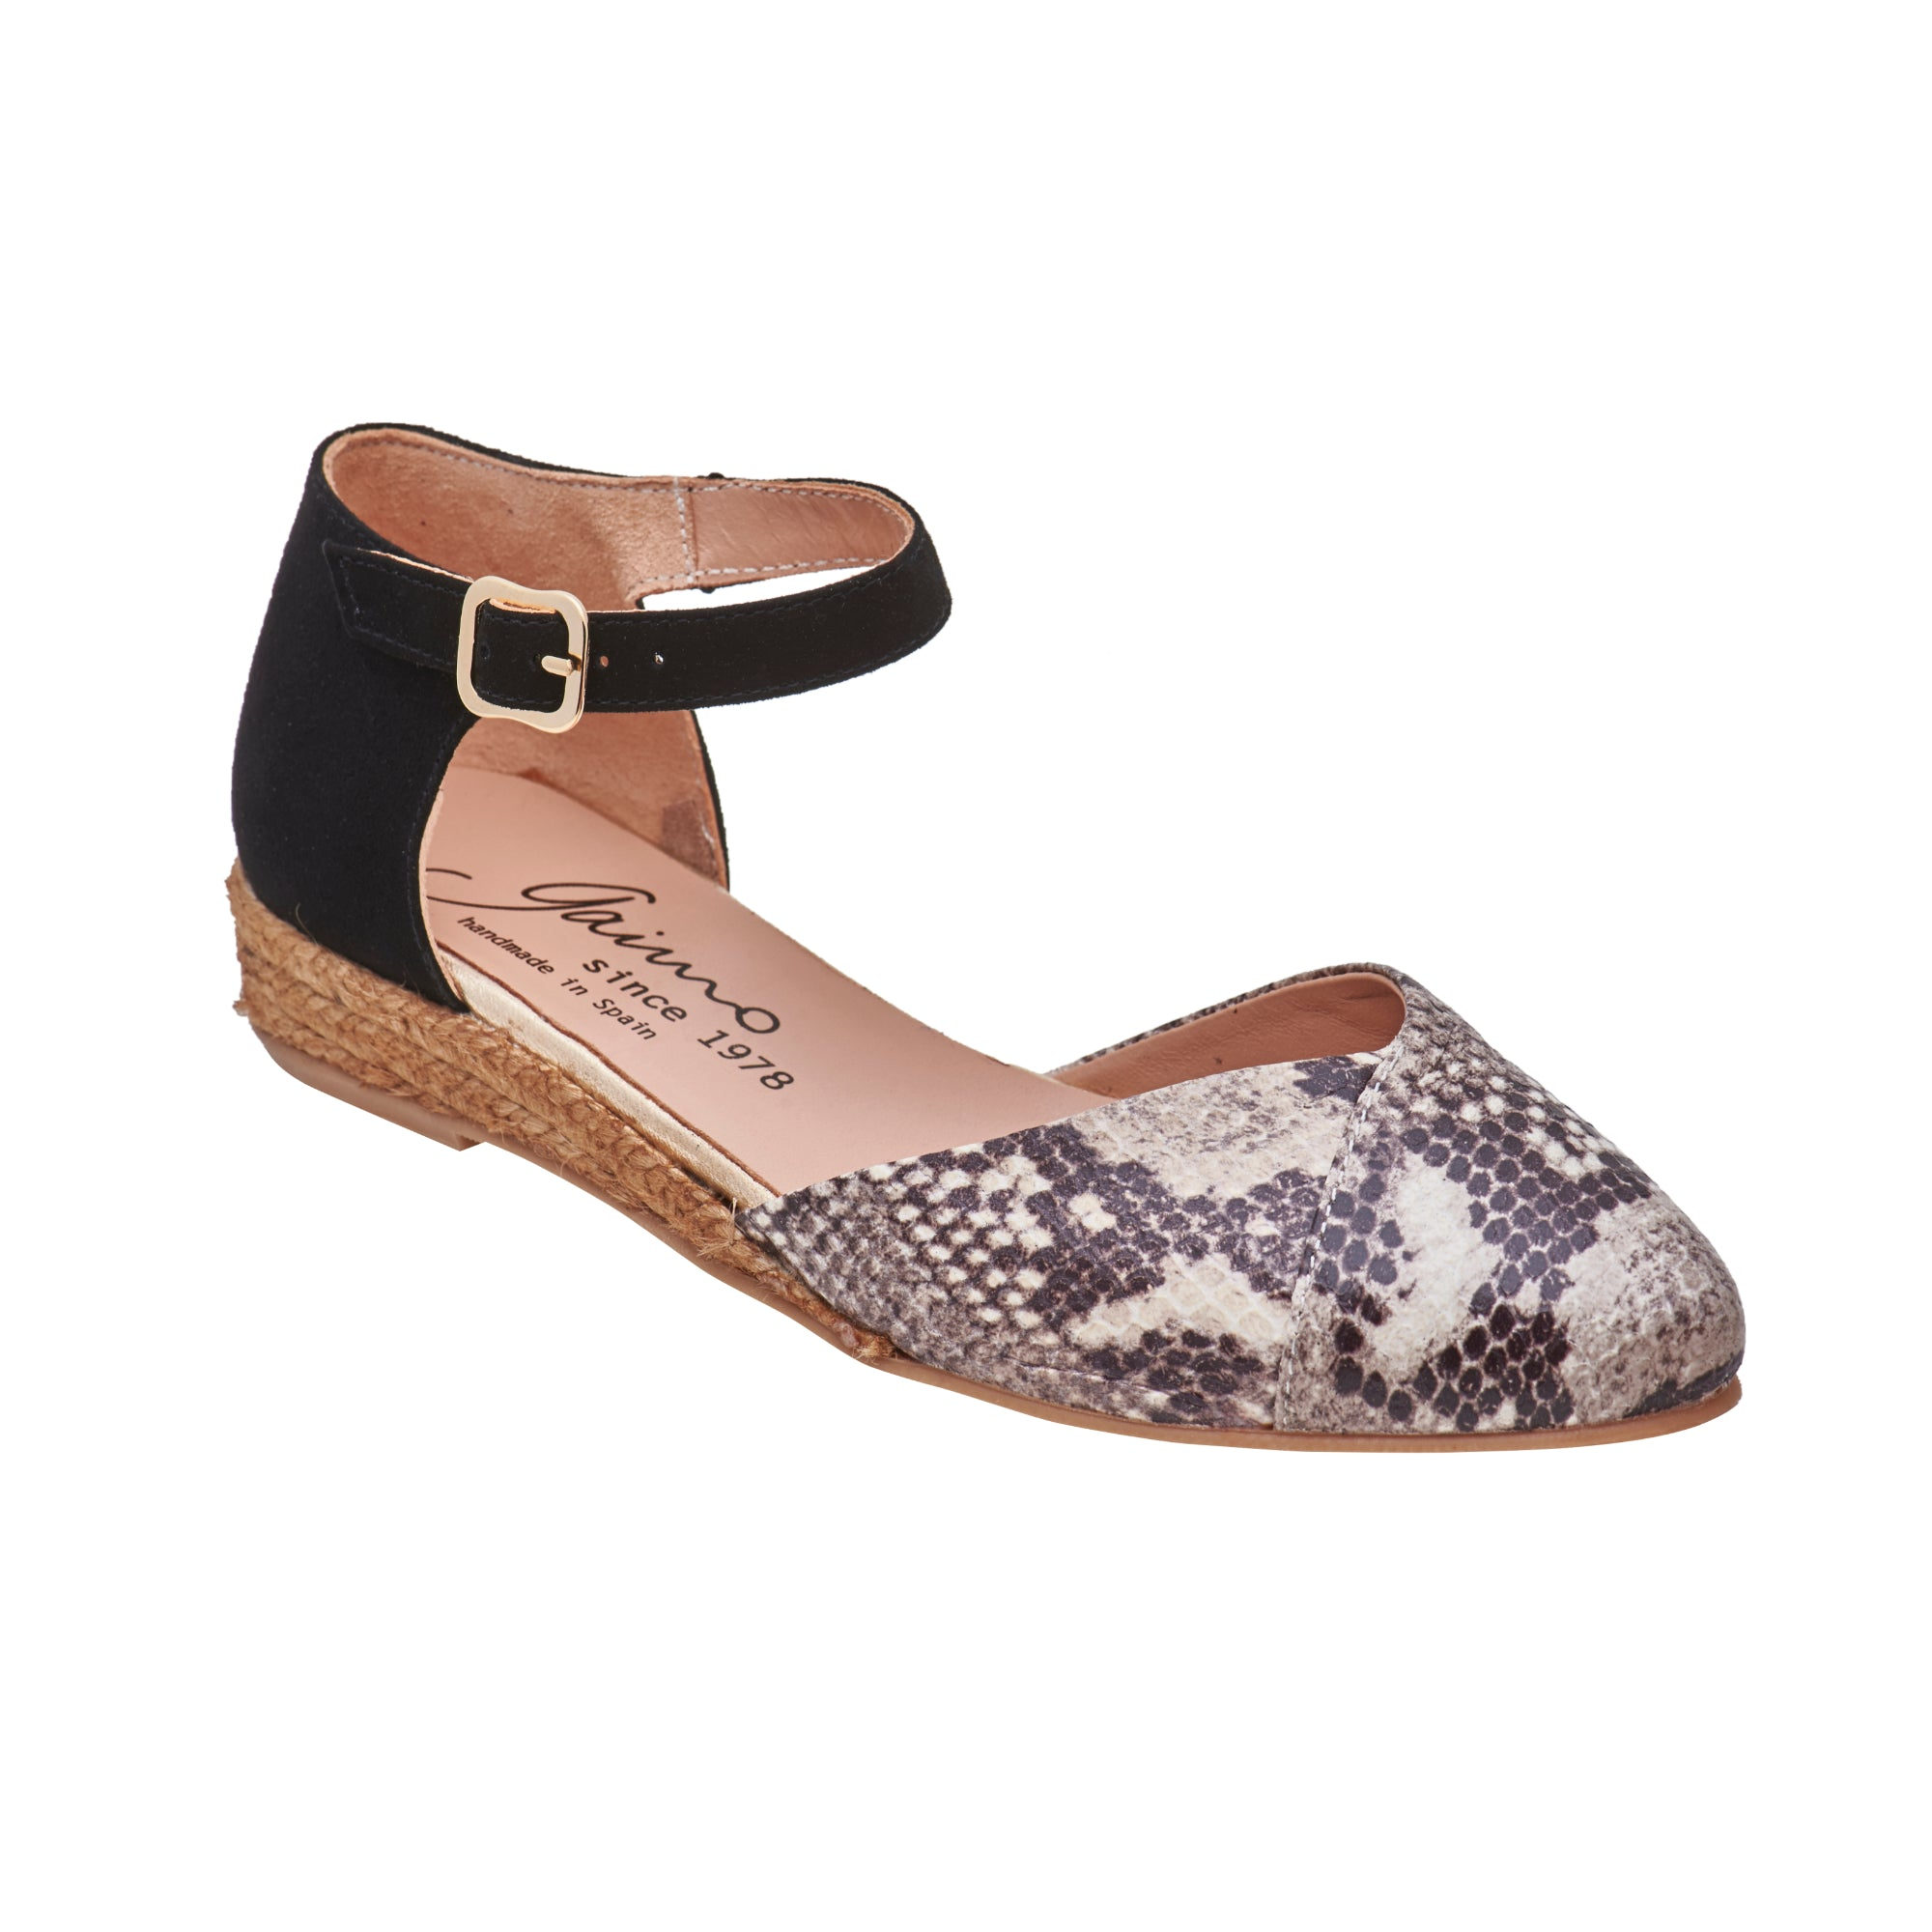 YANA Silver and Python espadrilles [sizes 35, 37, 40, 41 available]